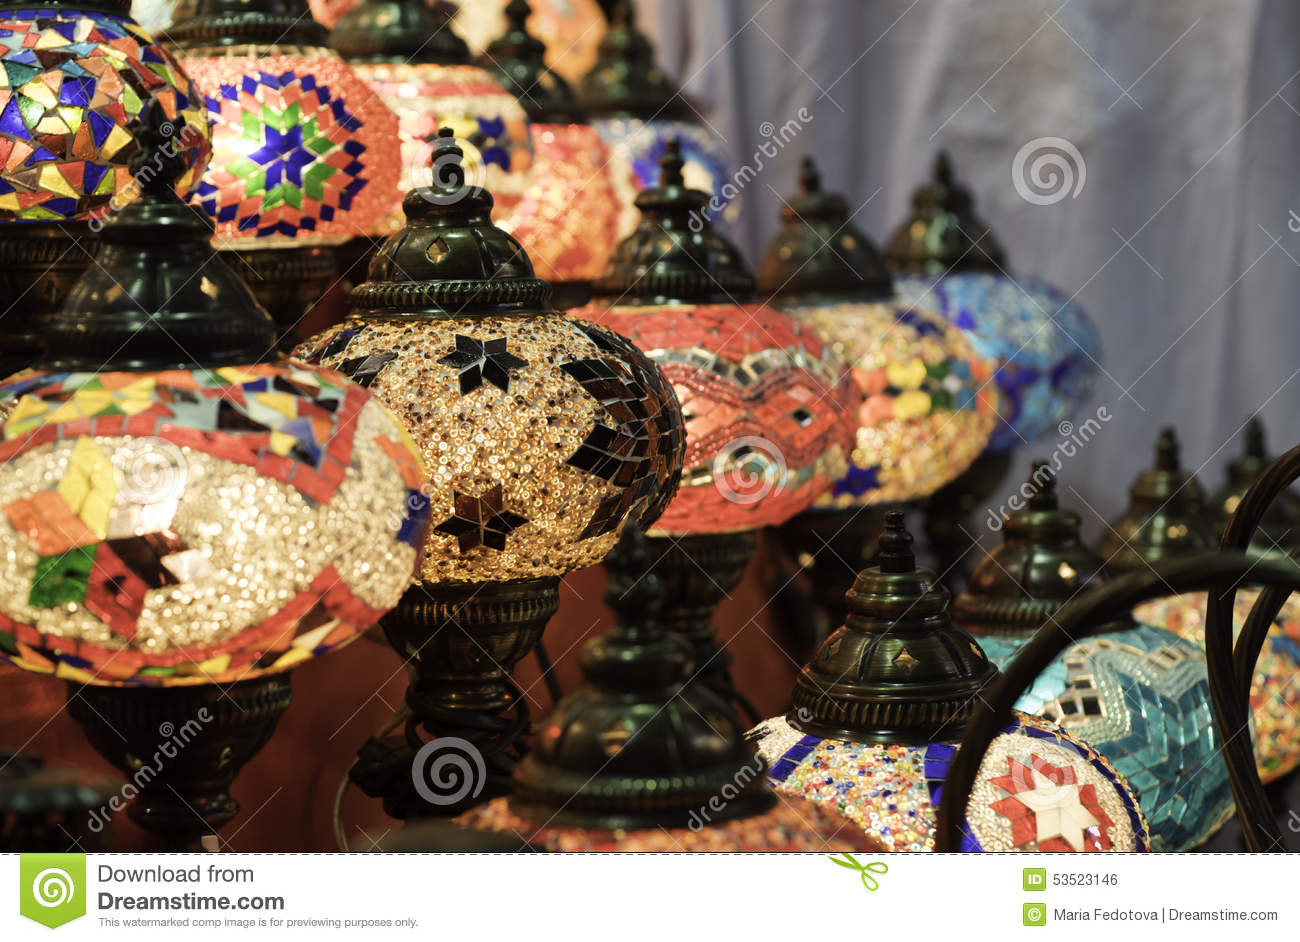 Arabian Lamp stock photo. Image of multicolored, souvenirs - 53523146 for Traditional Arabic Lamp  75tgx